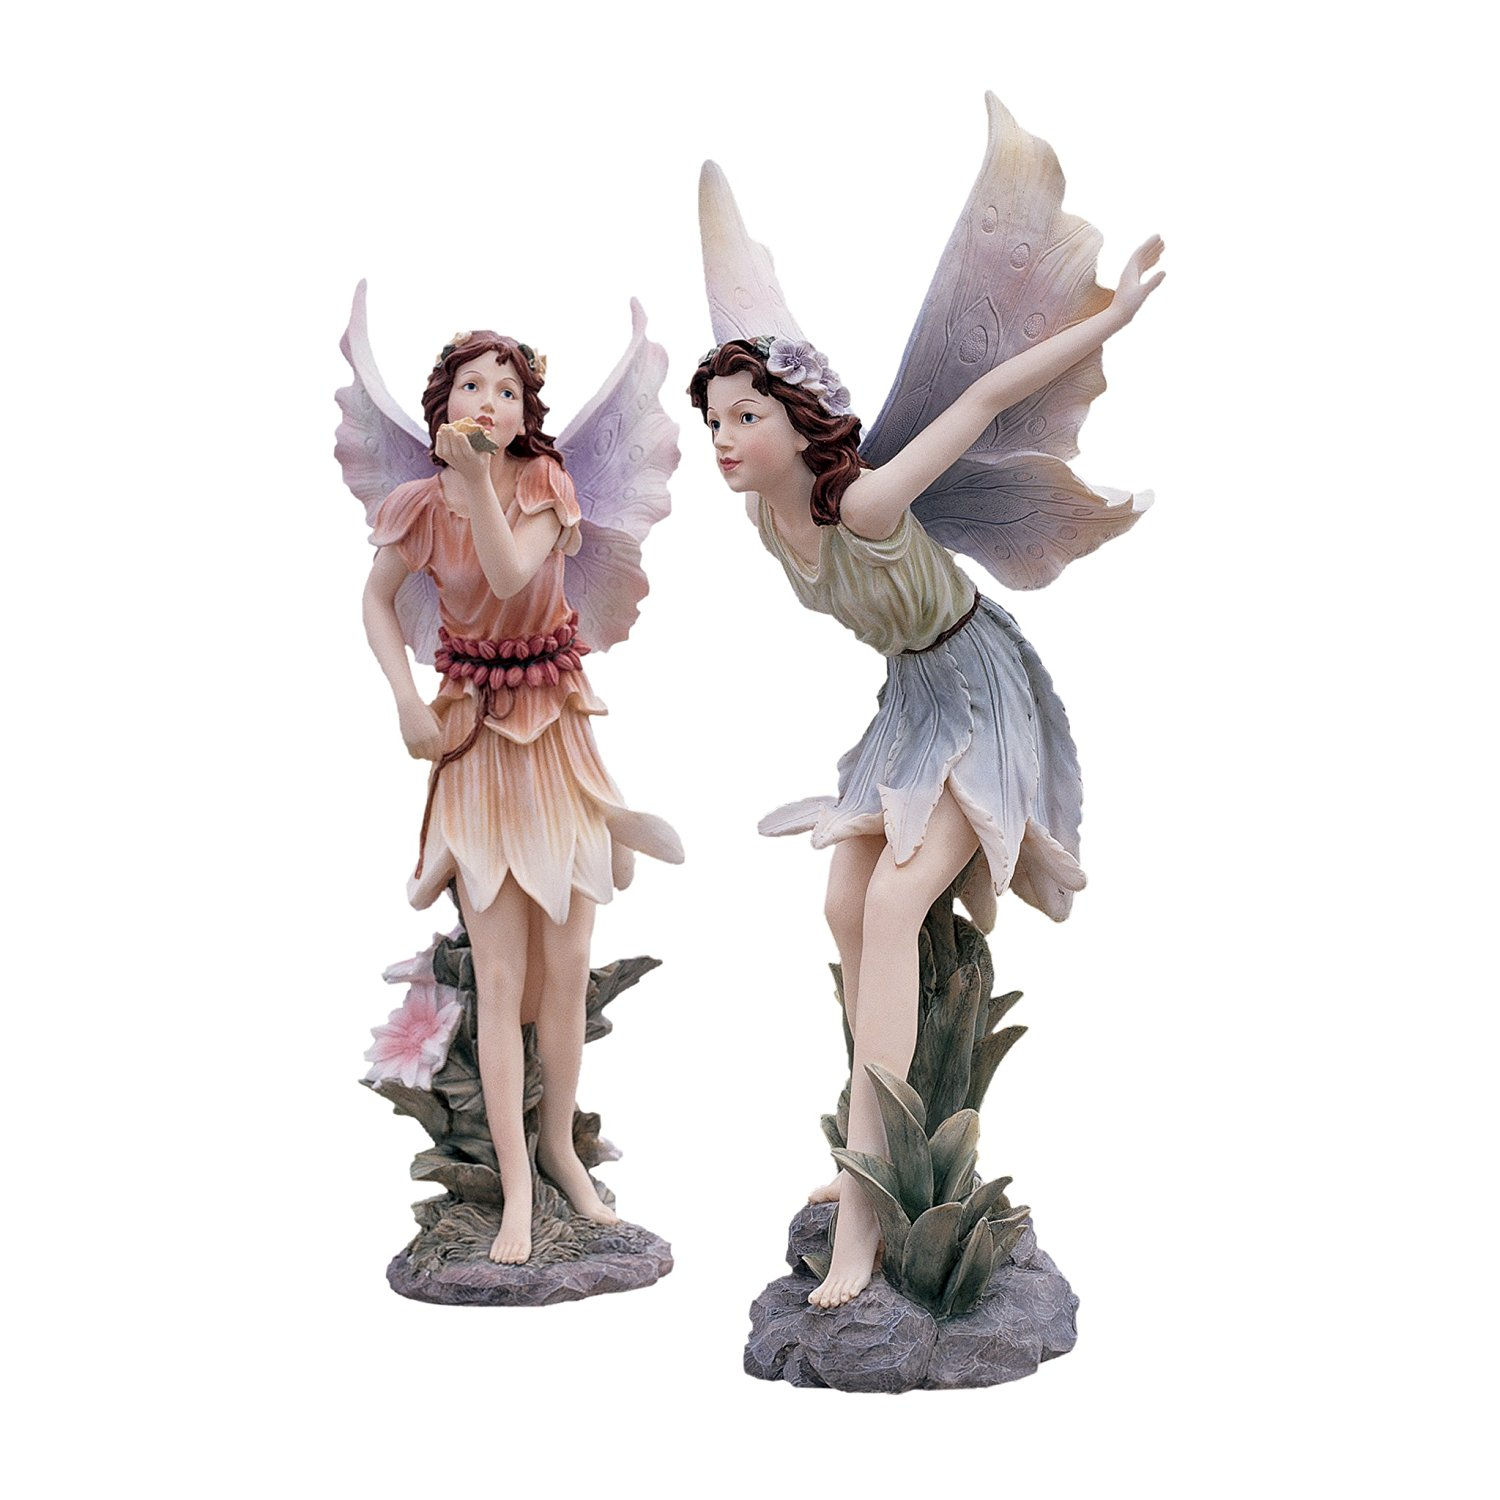 Faerie Statues Buy Design Toscano Fairies Of Stratford Statues Fairy Statues In